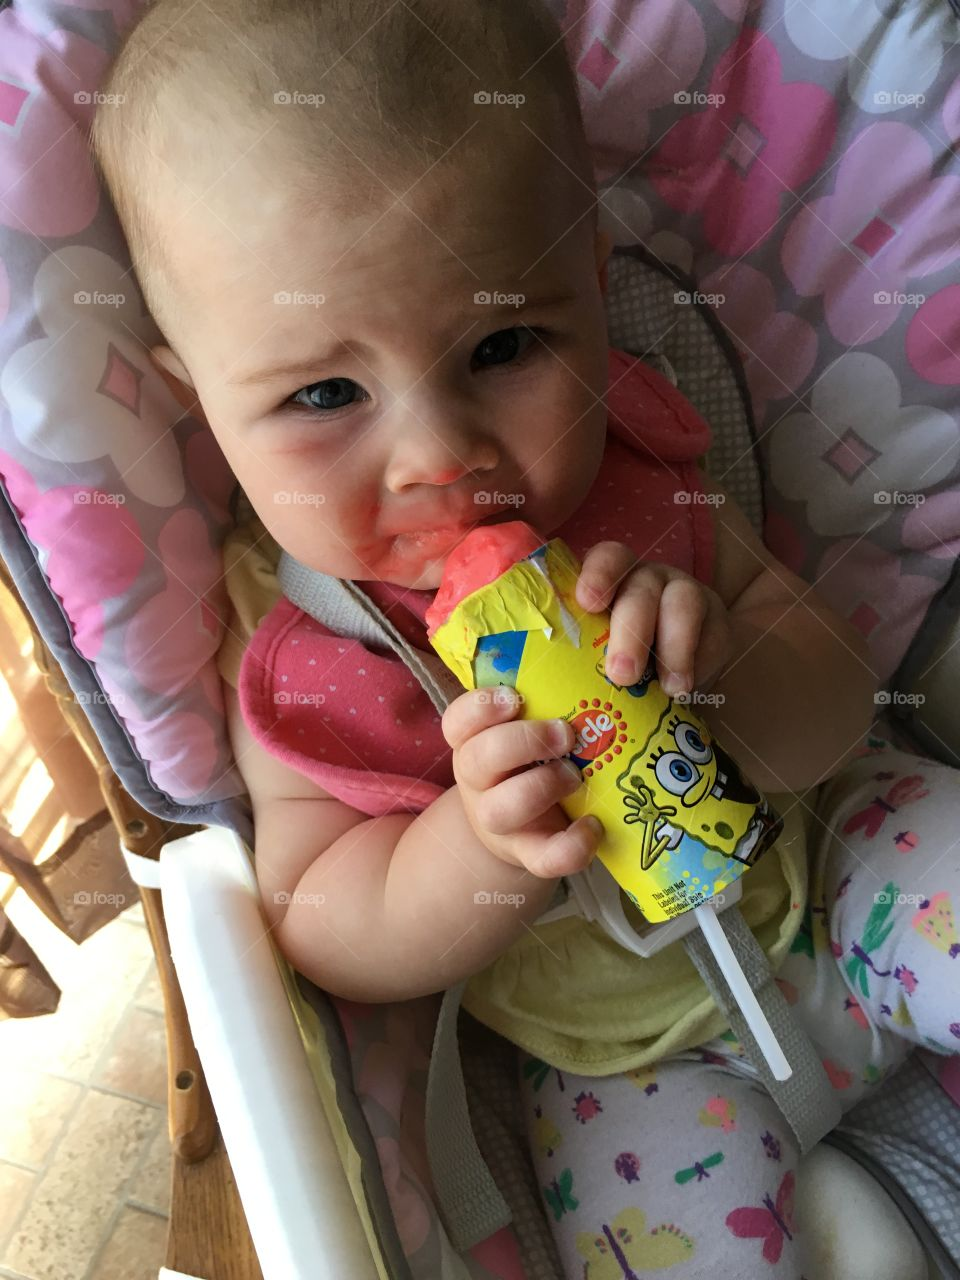 Elevated view of cute baby eating popsicles